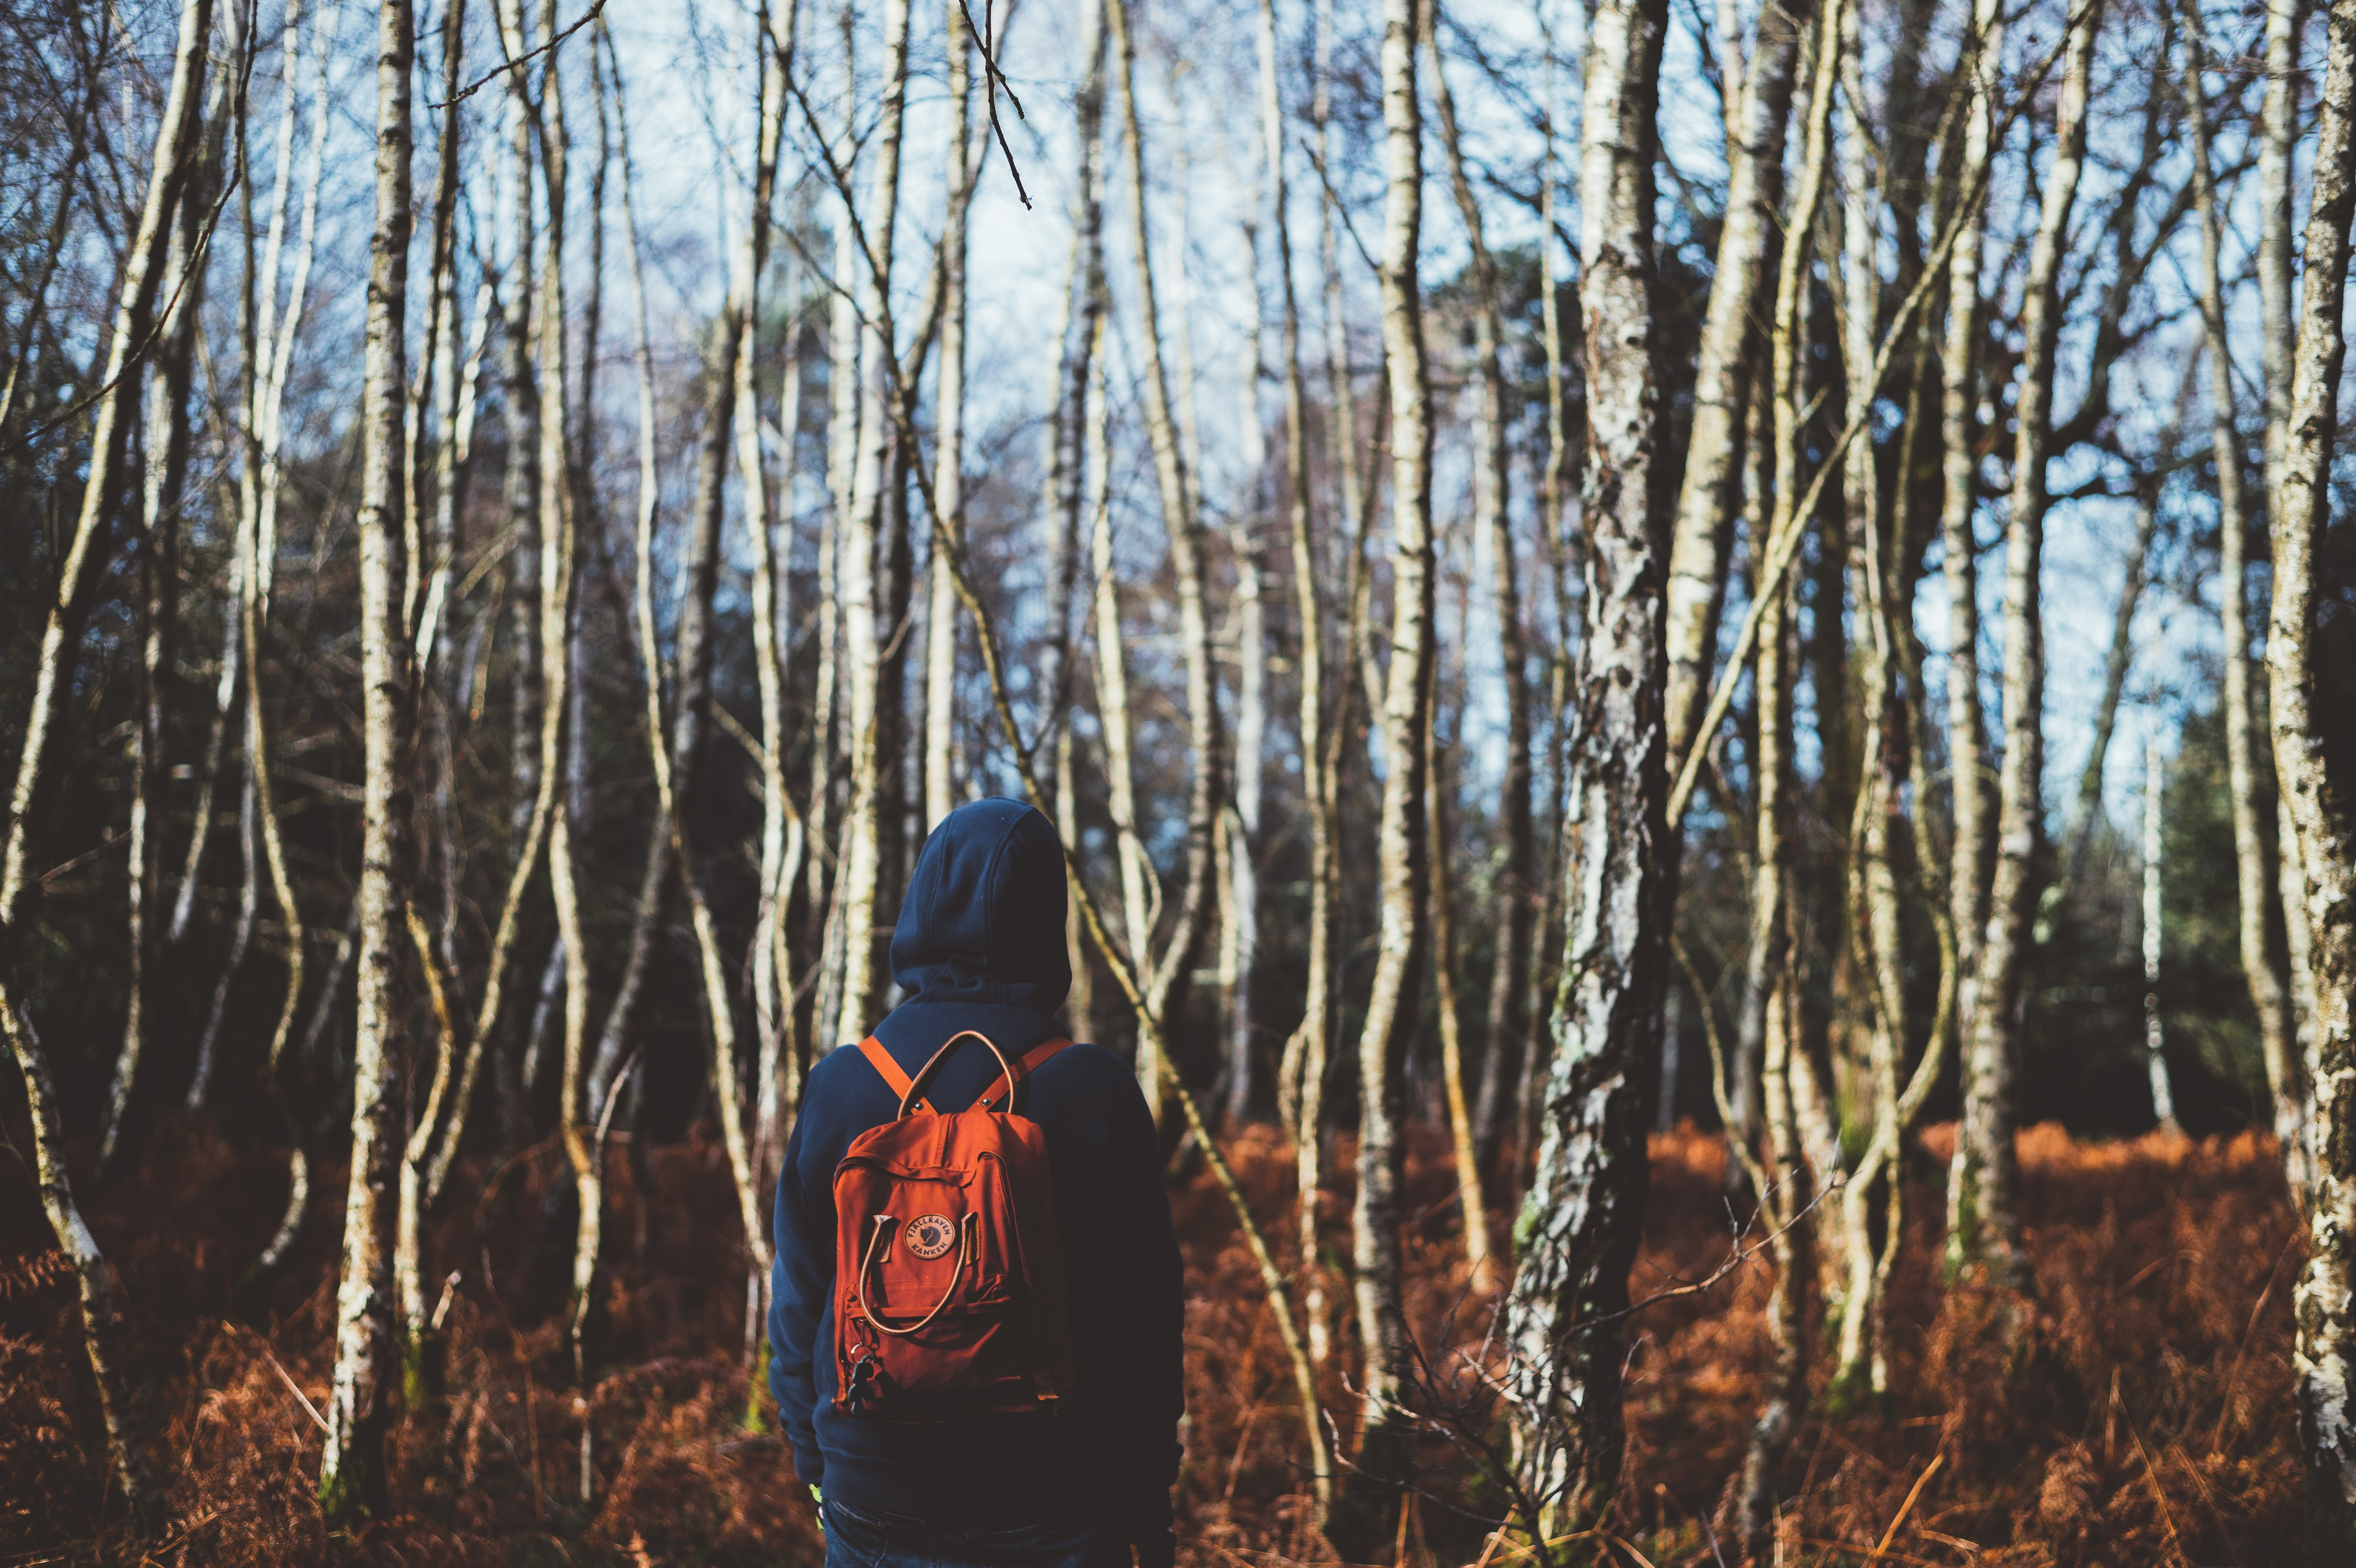 A person with a hoodie and backpack on staring at leafless trees in the winter